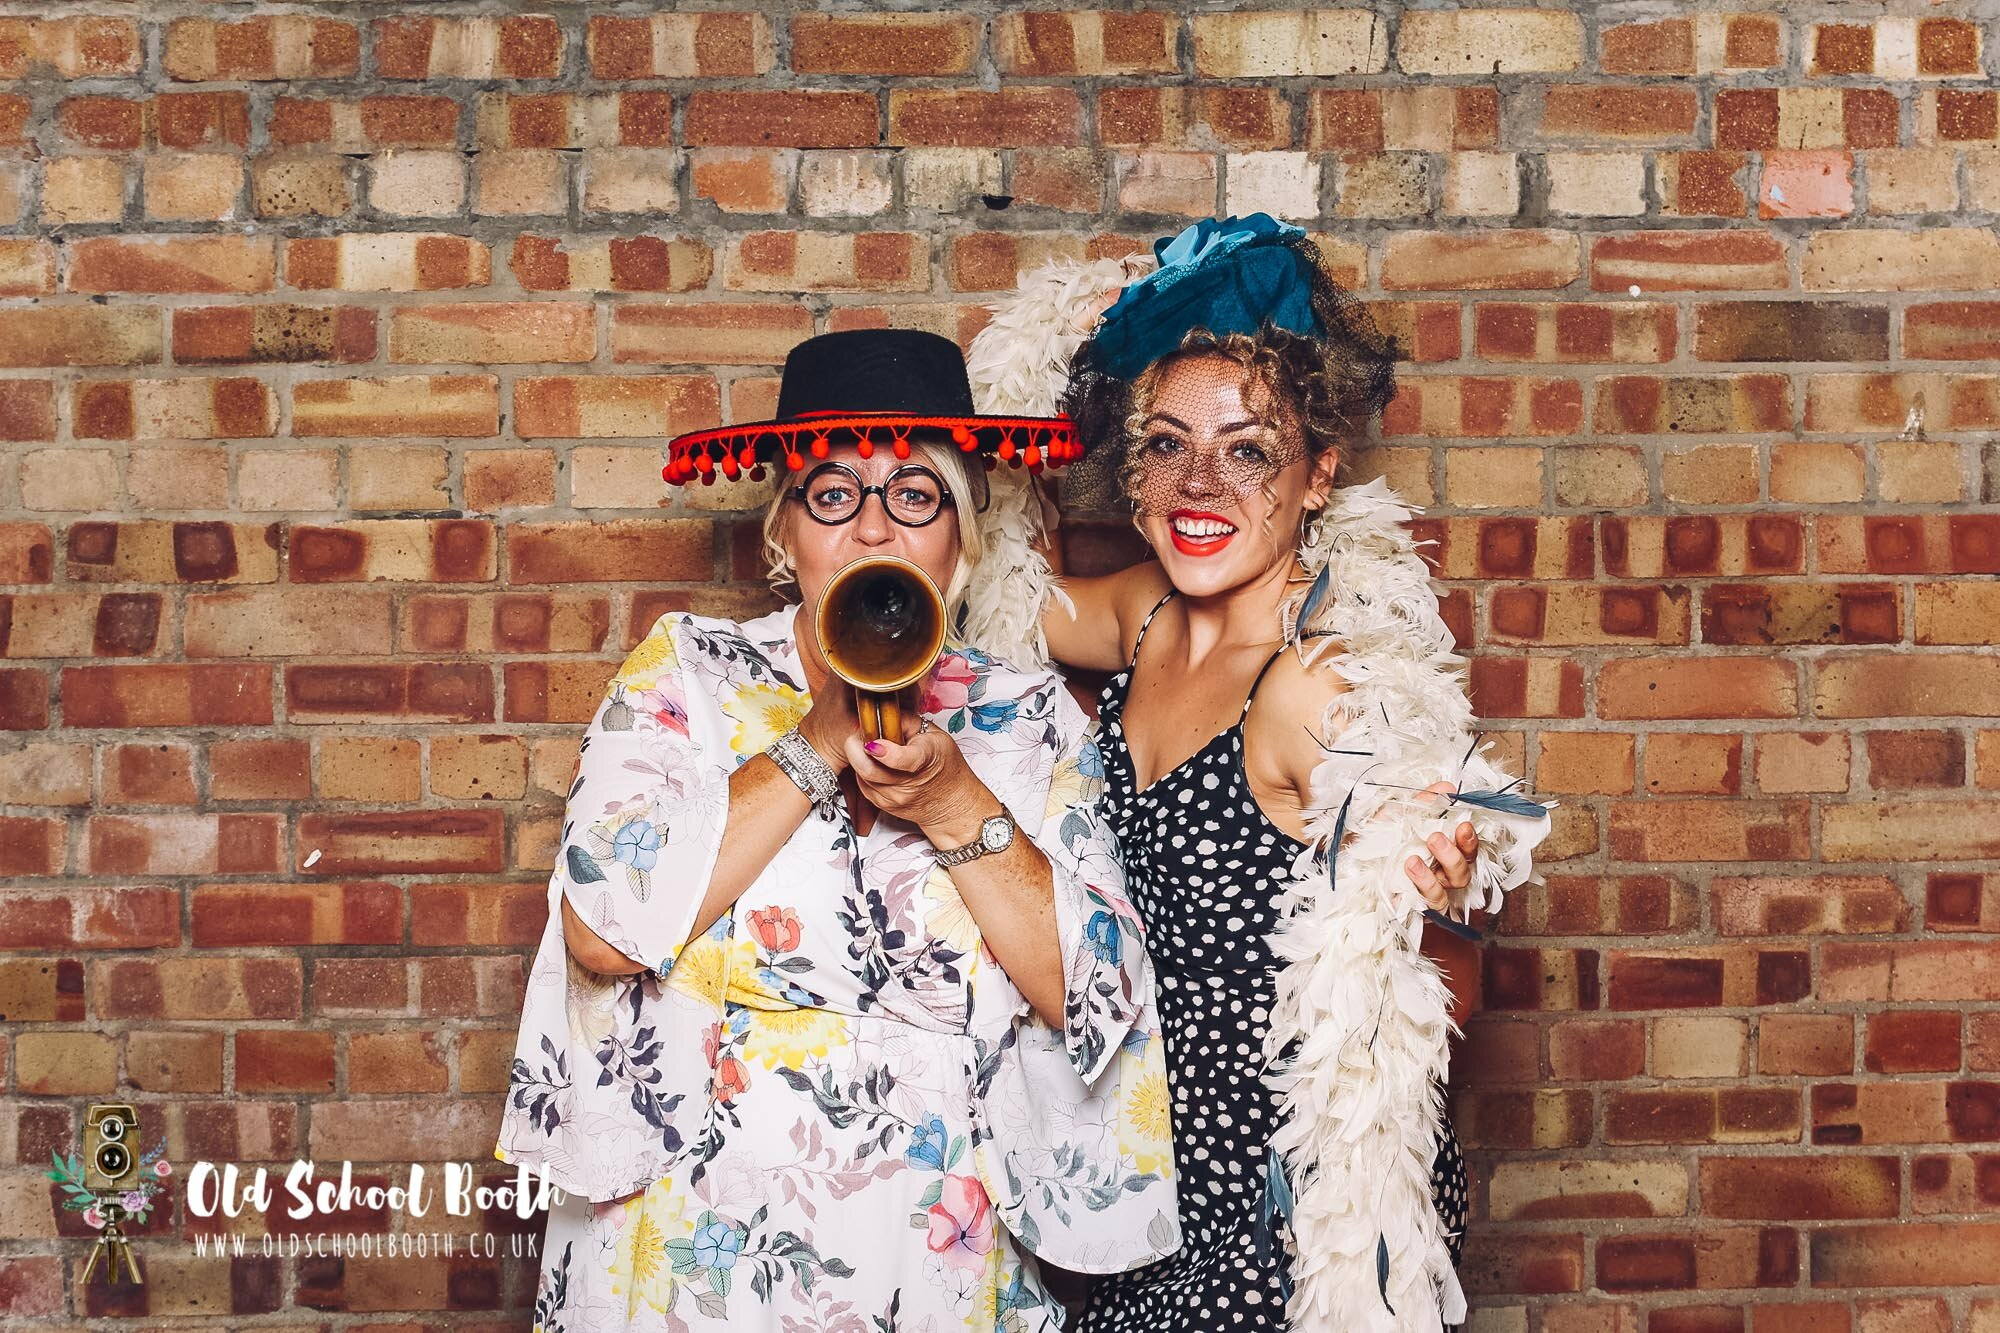 Vintage Photo Booth Hire UK